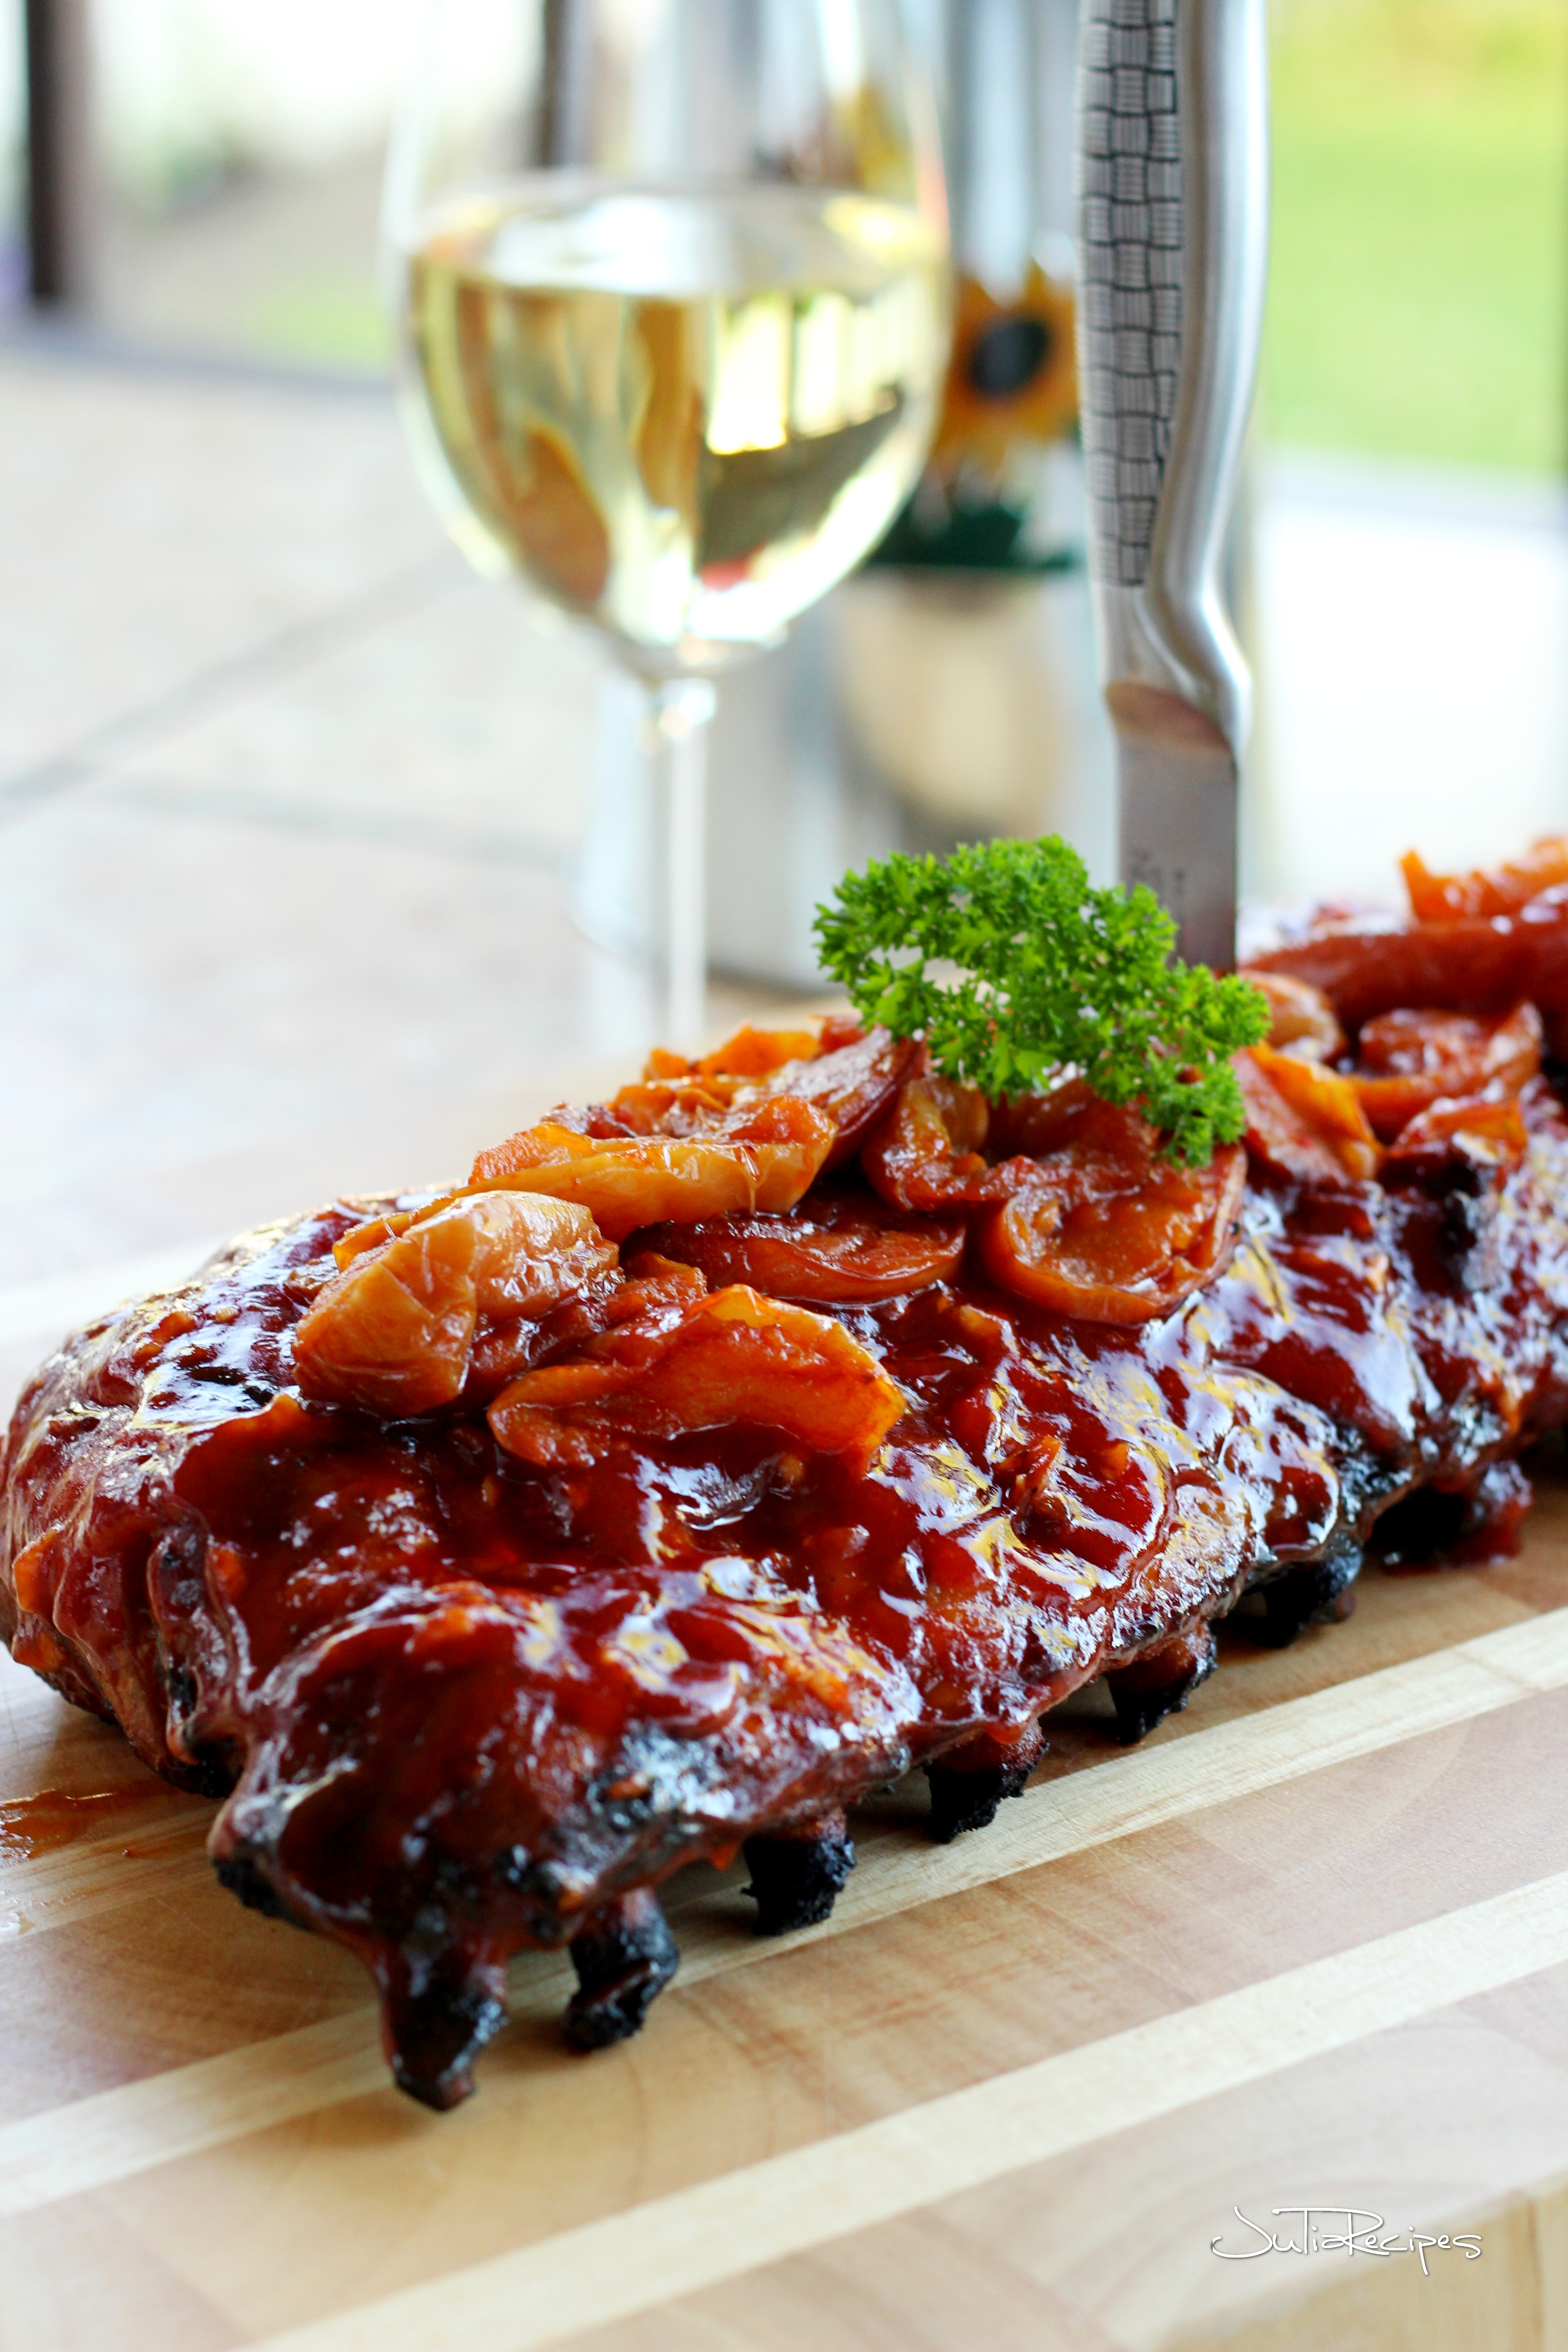 apple smoked pork ribs on wooden plank with glass of white wine